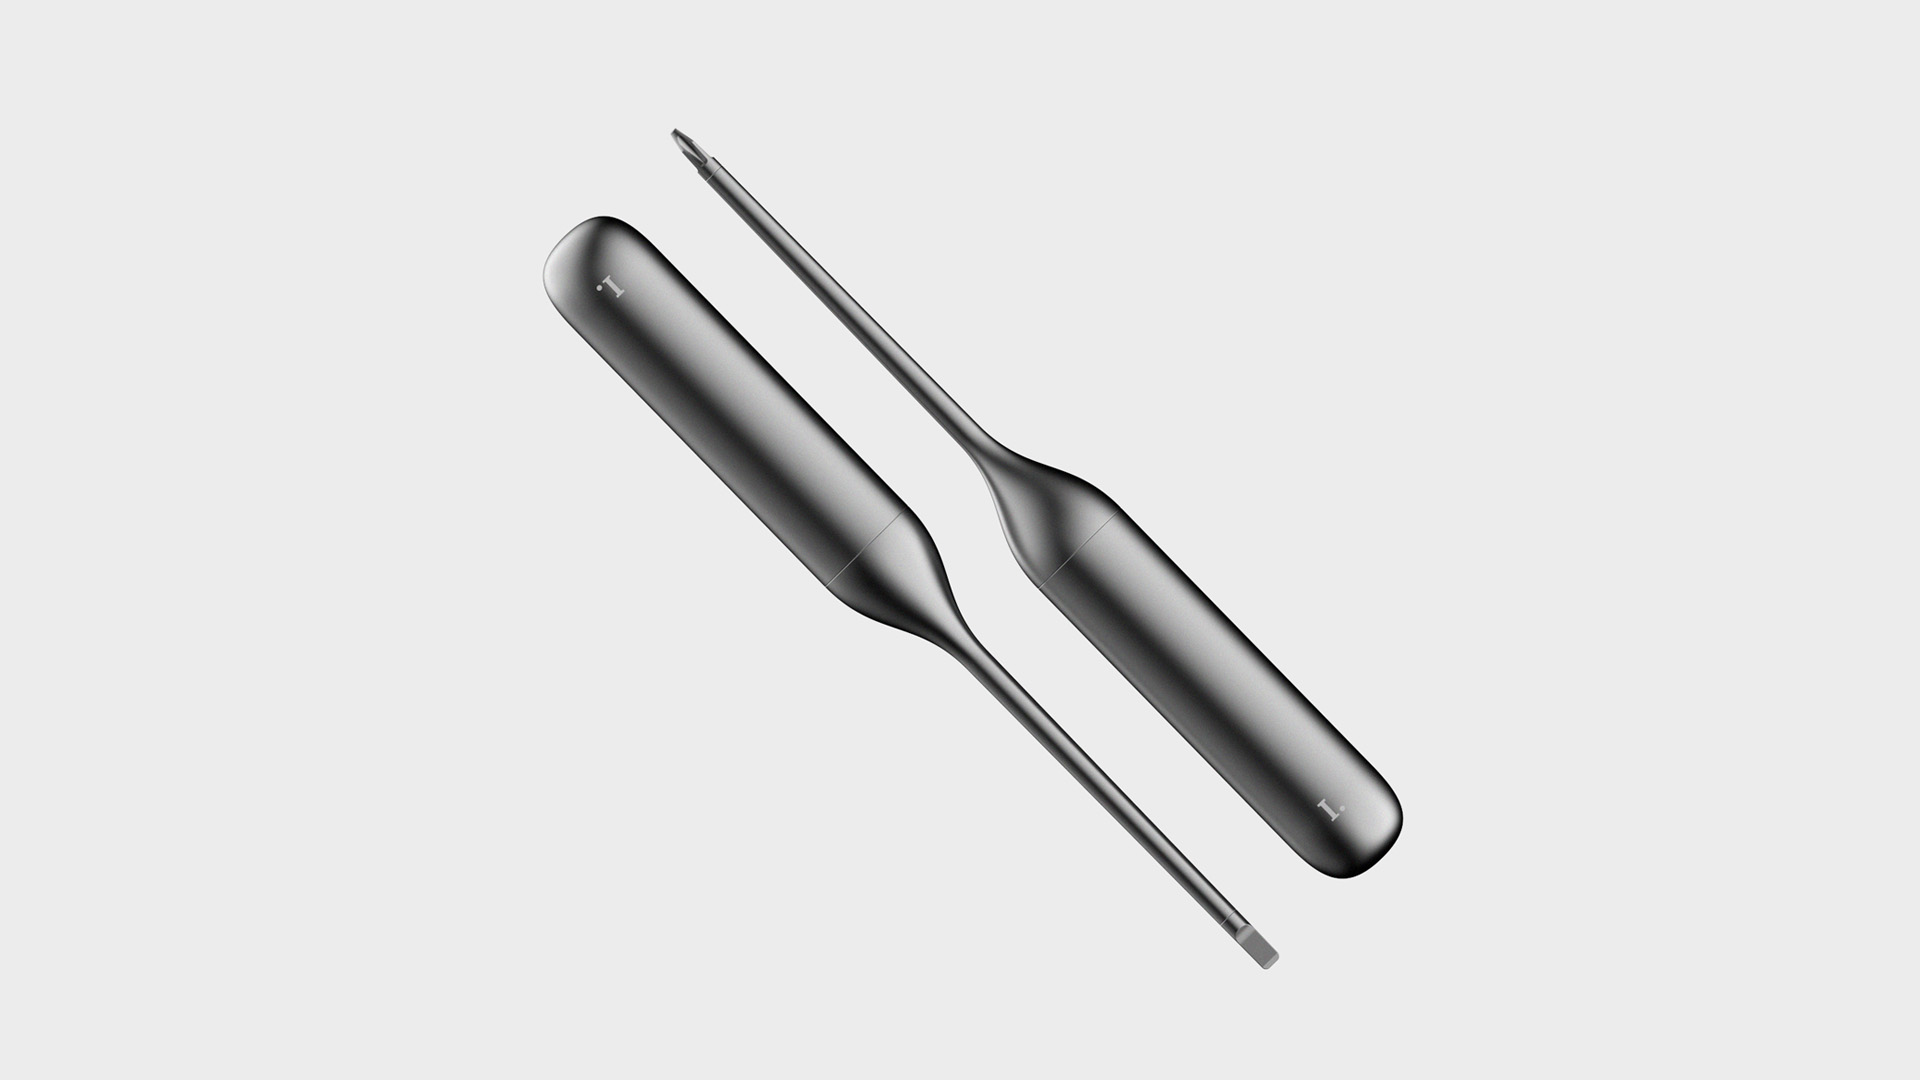 The screwdrivers follow the same manufacturing processes as the hammer (mentioned above), ensuring quality and visual consistency.